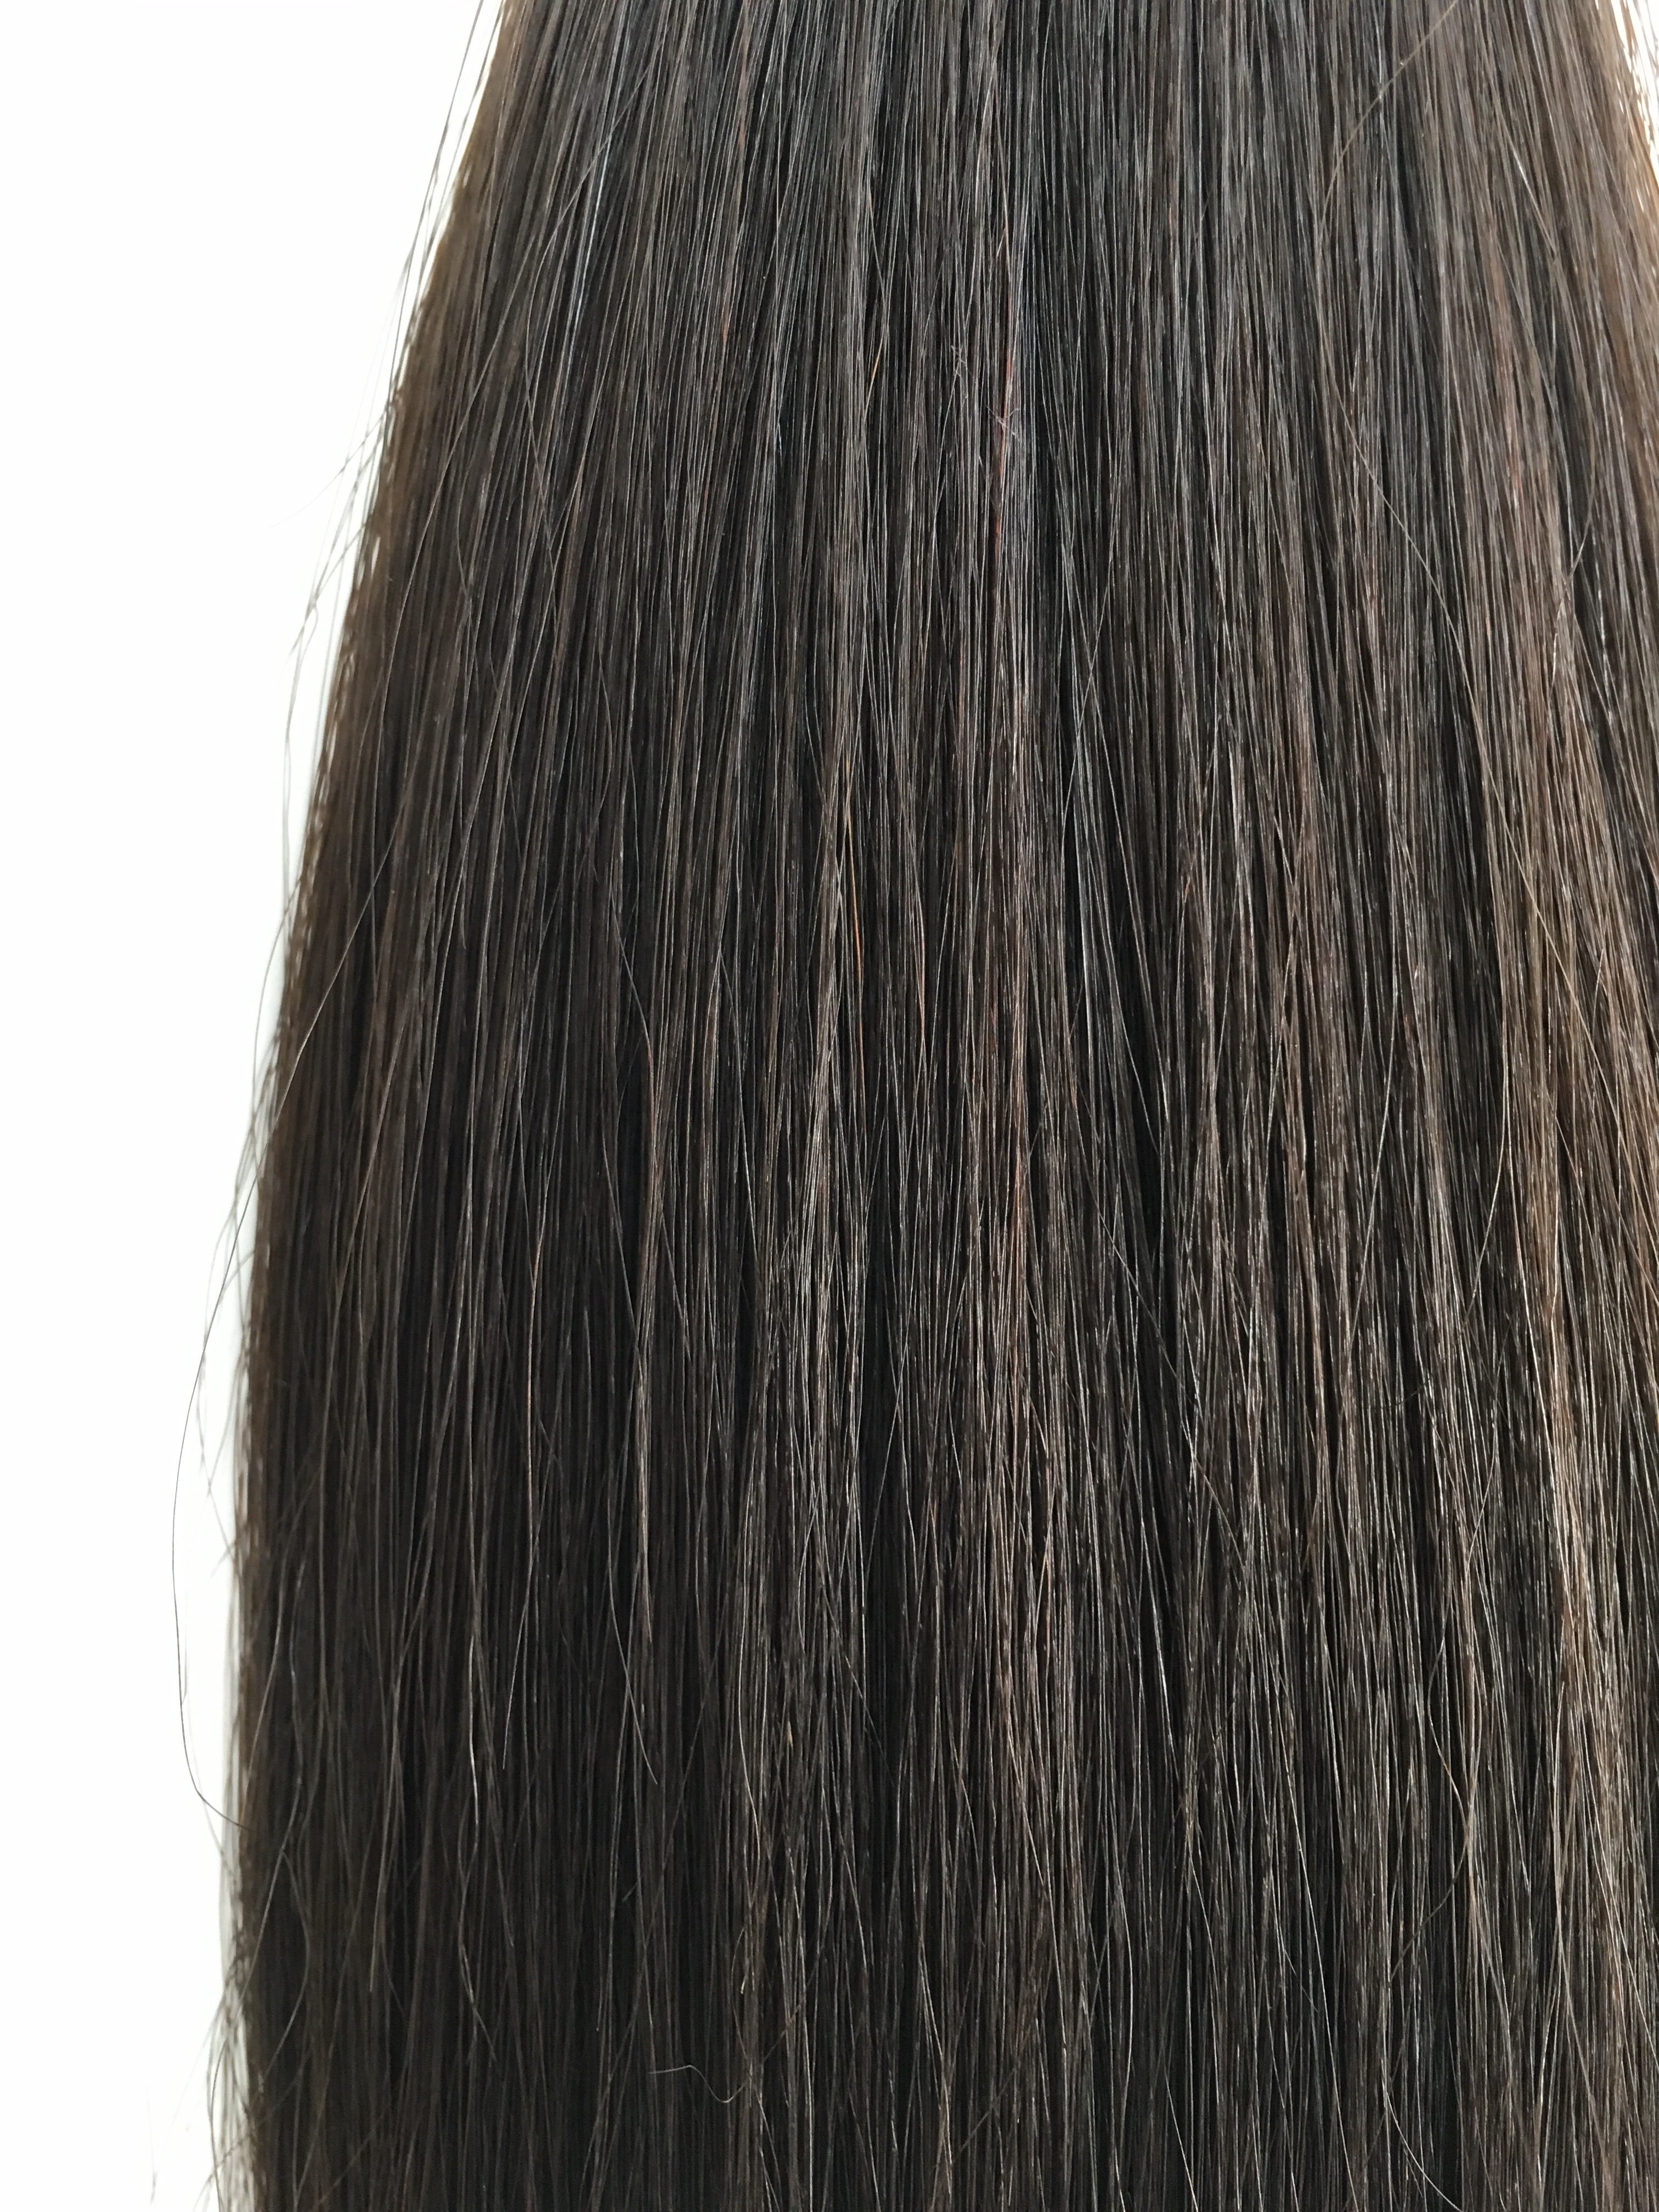 Virgin Uncoloured Brazilian Virgin Remy Human Hair Weft 16inches Curly Wavy or Straight_7